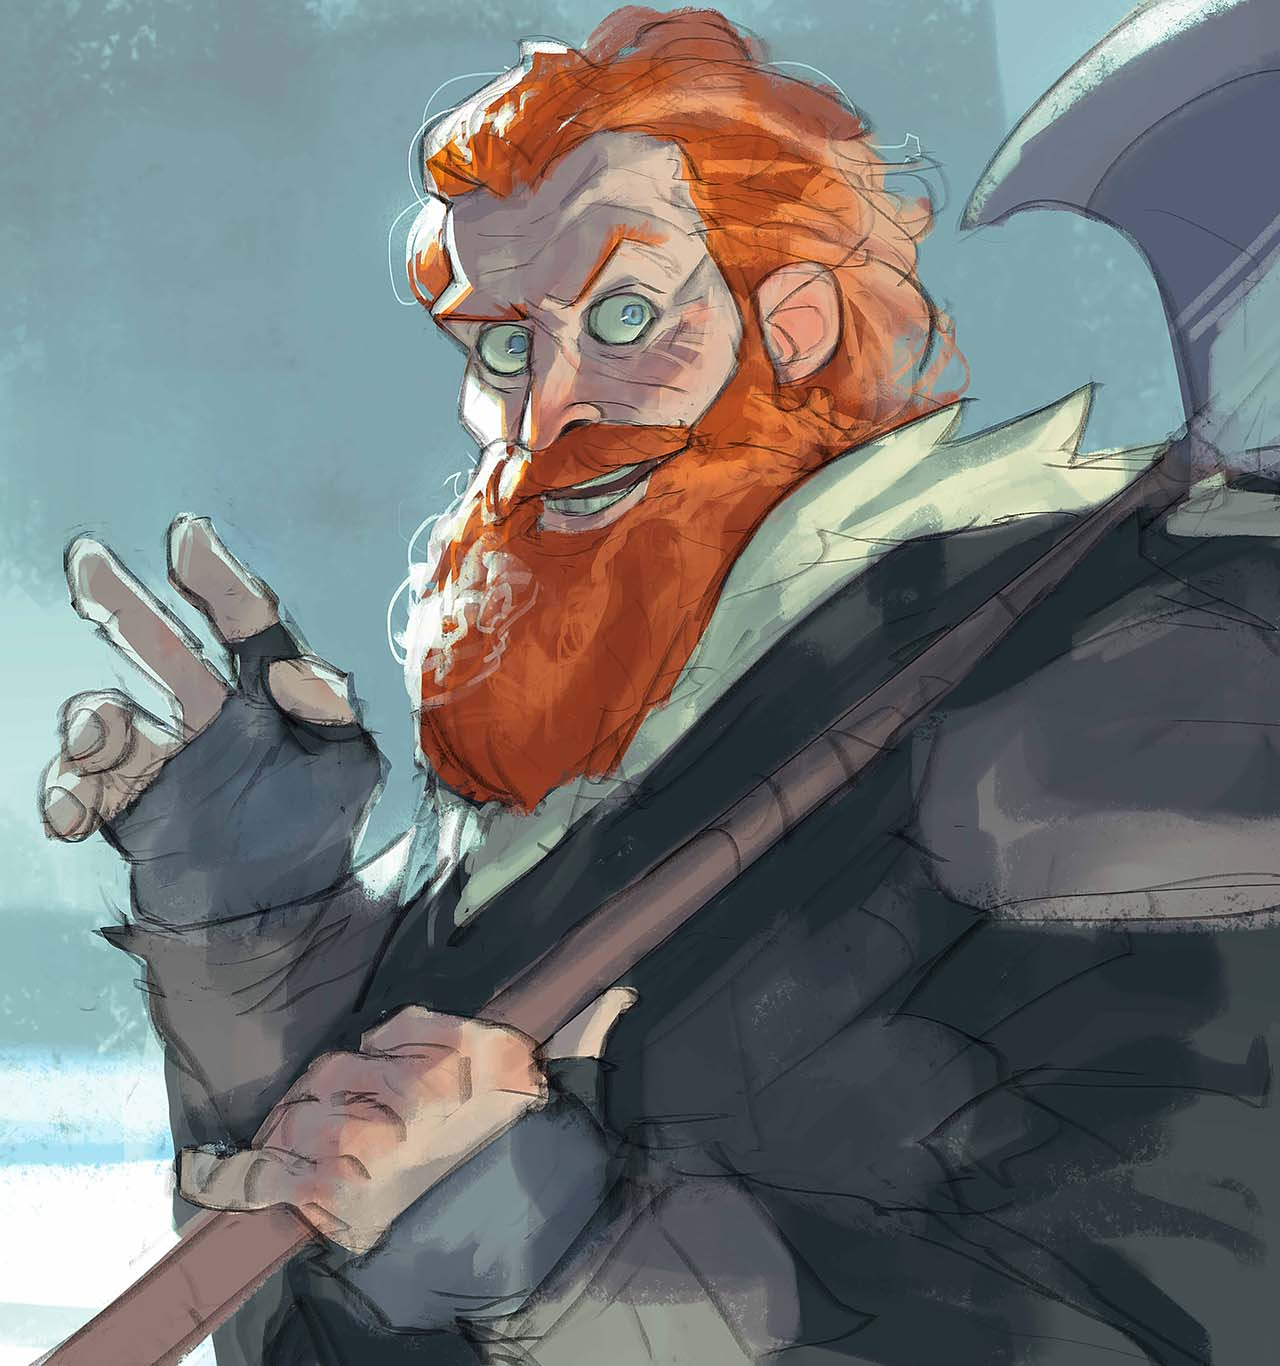 Artist Creates Unique Character Arts From Game Of Thrones – Tormund Giantsbane Character Art By Ramón Nuñez